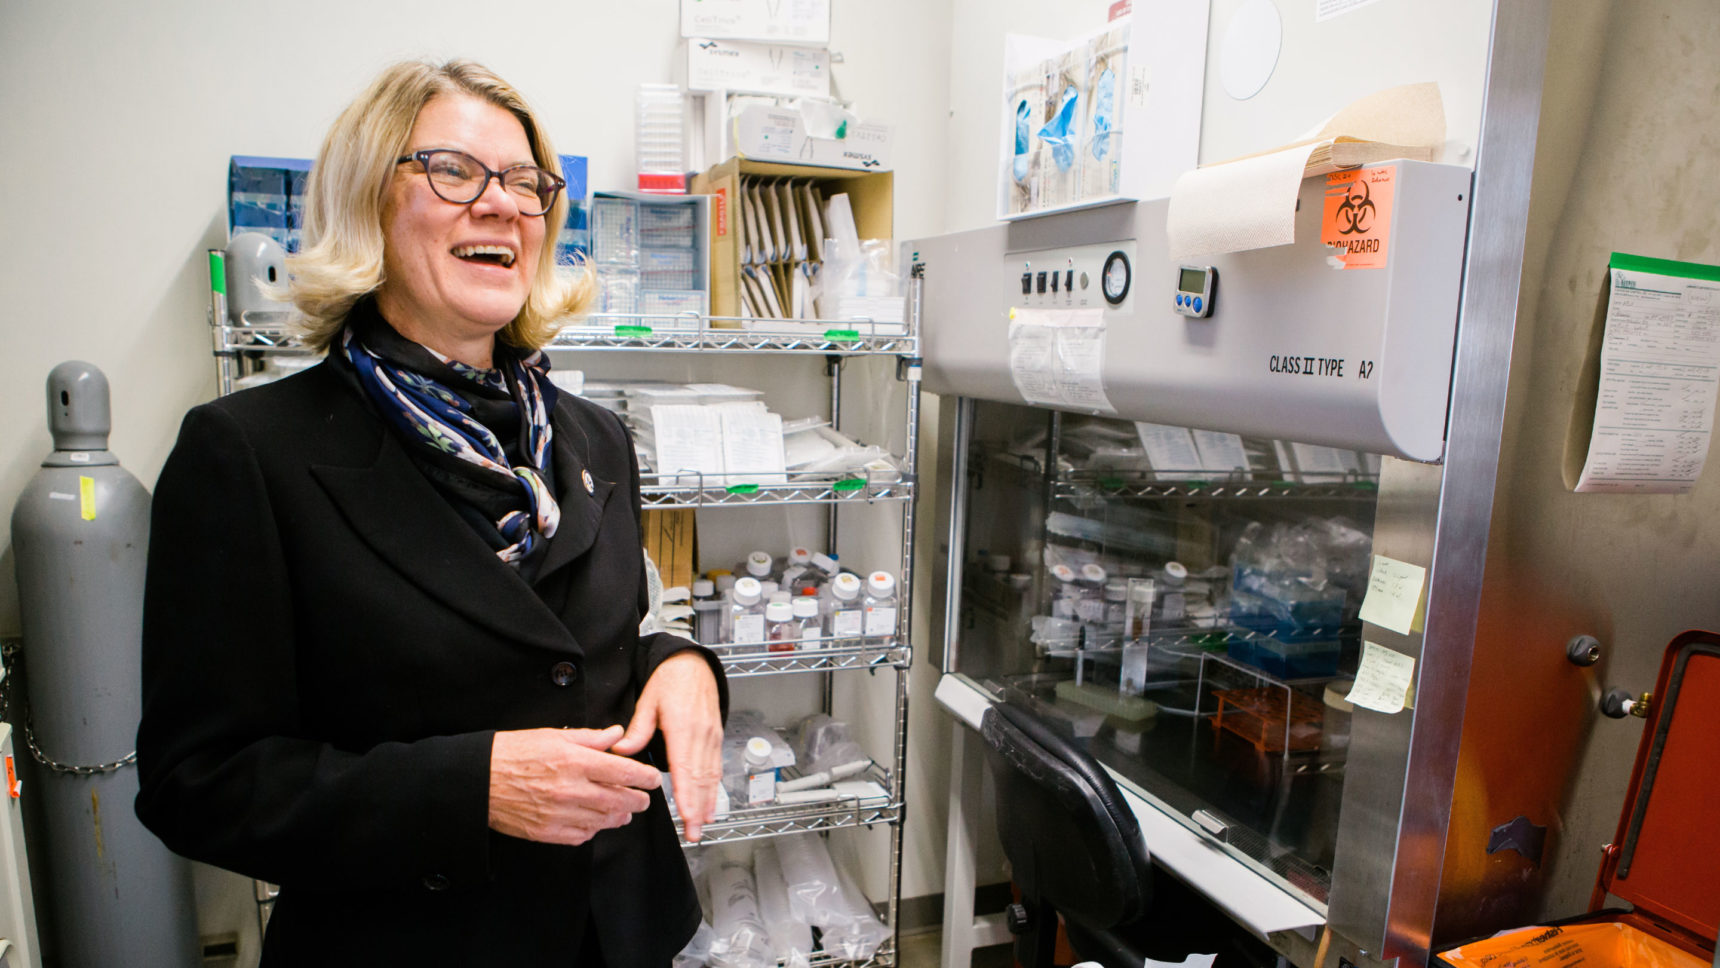 Stem cell researcher Renee Reijo Pera of Montana State University explains how the timing of developmental events in the early embryo can subtly affect health many years later.